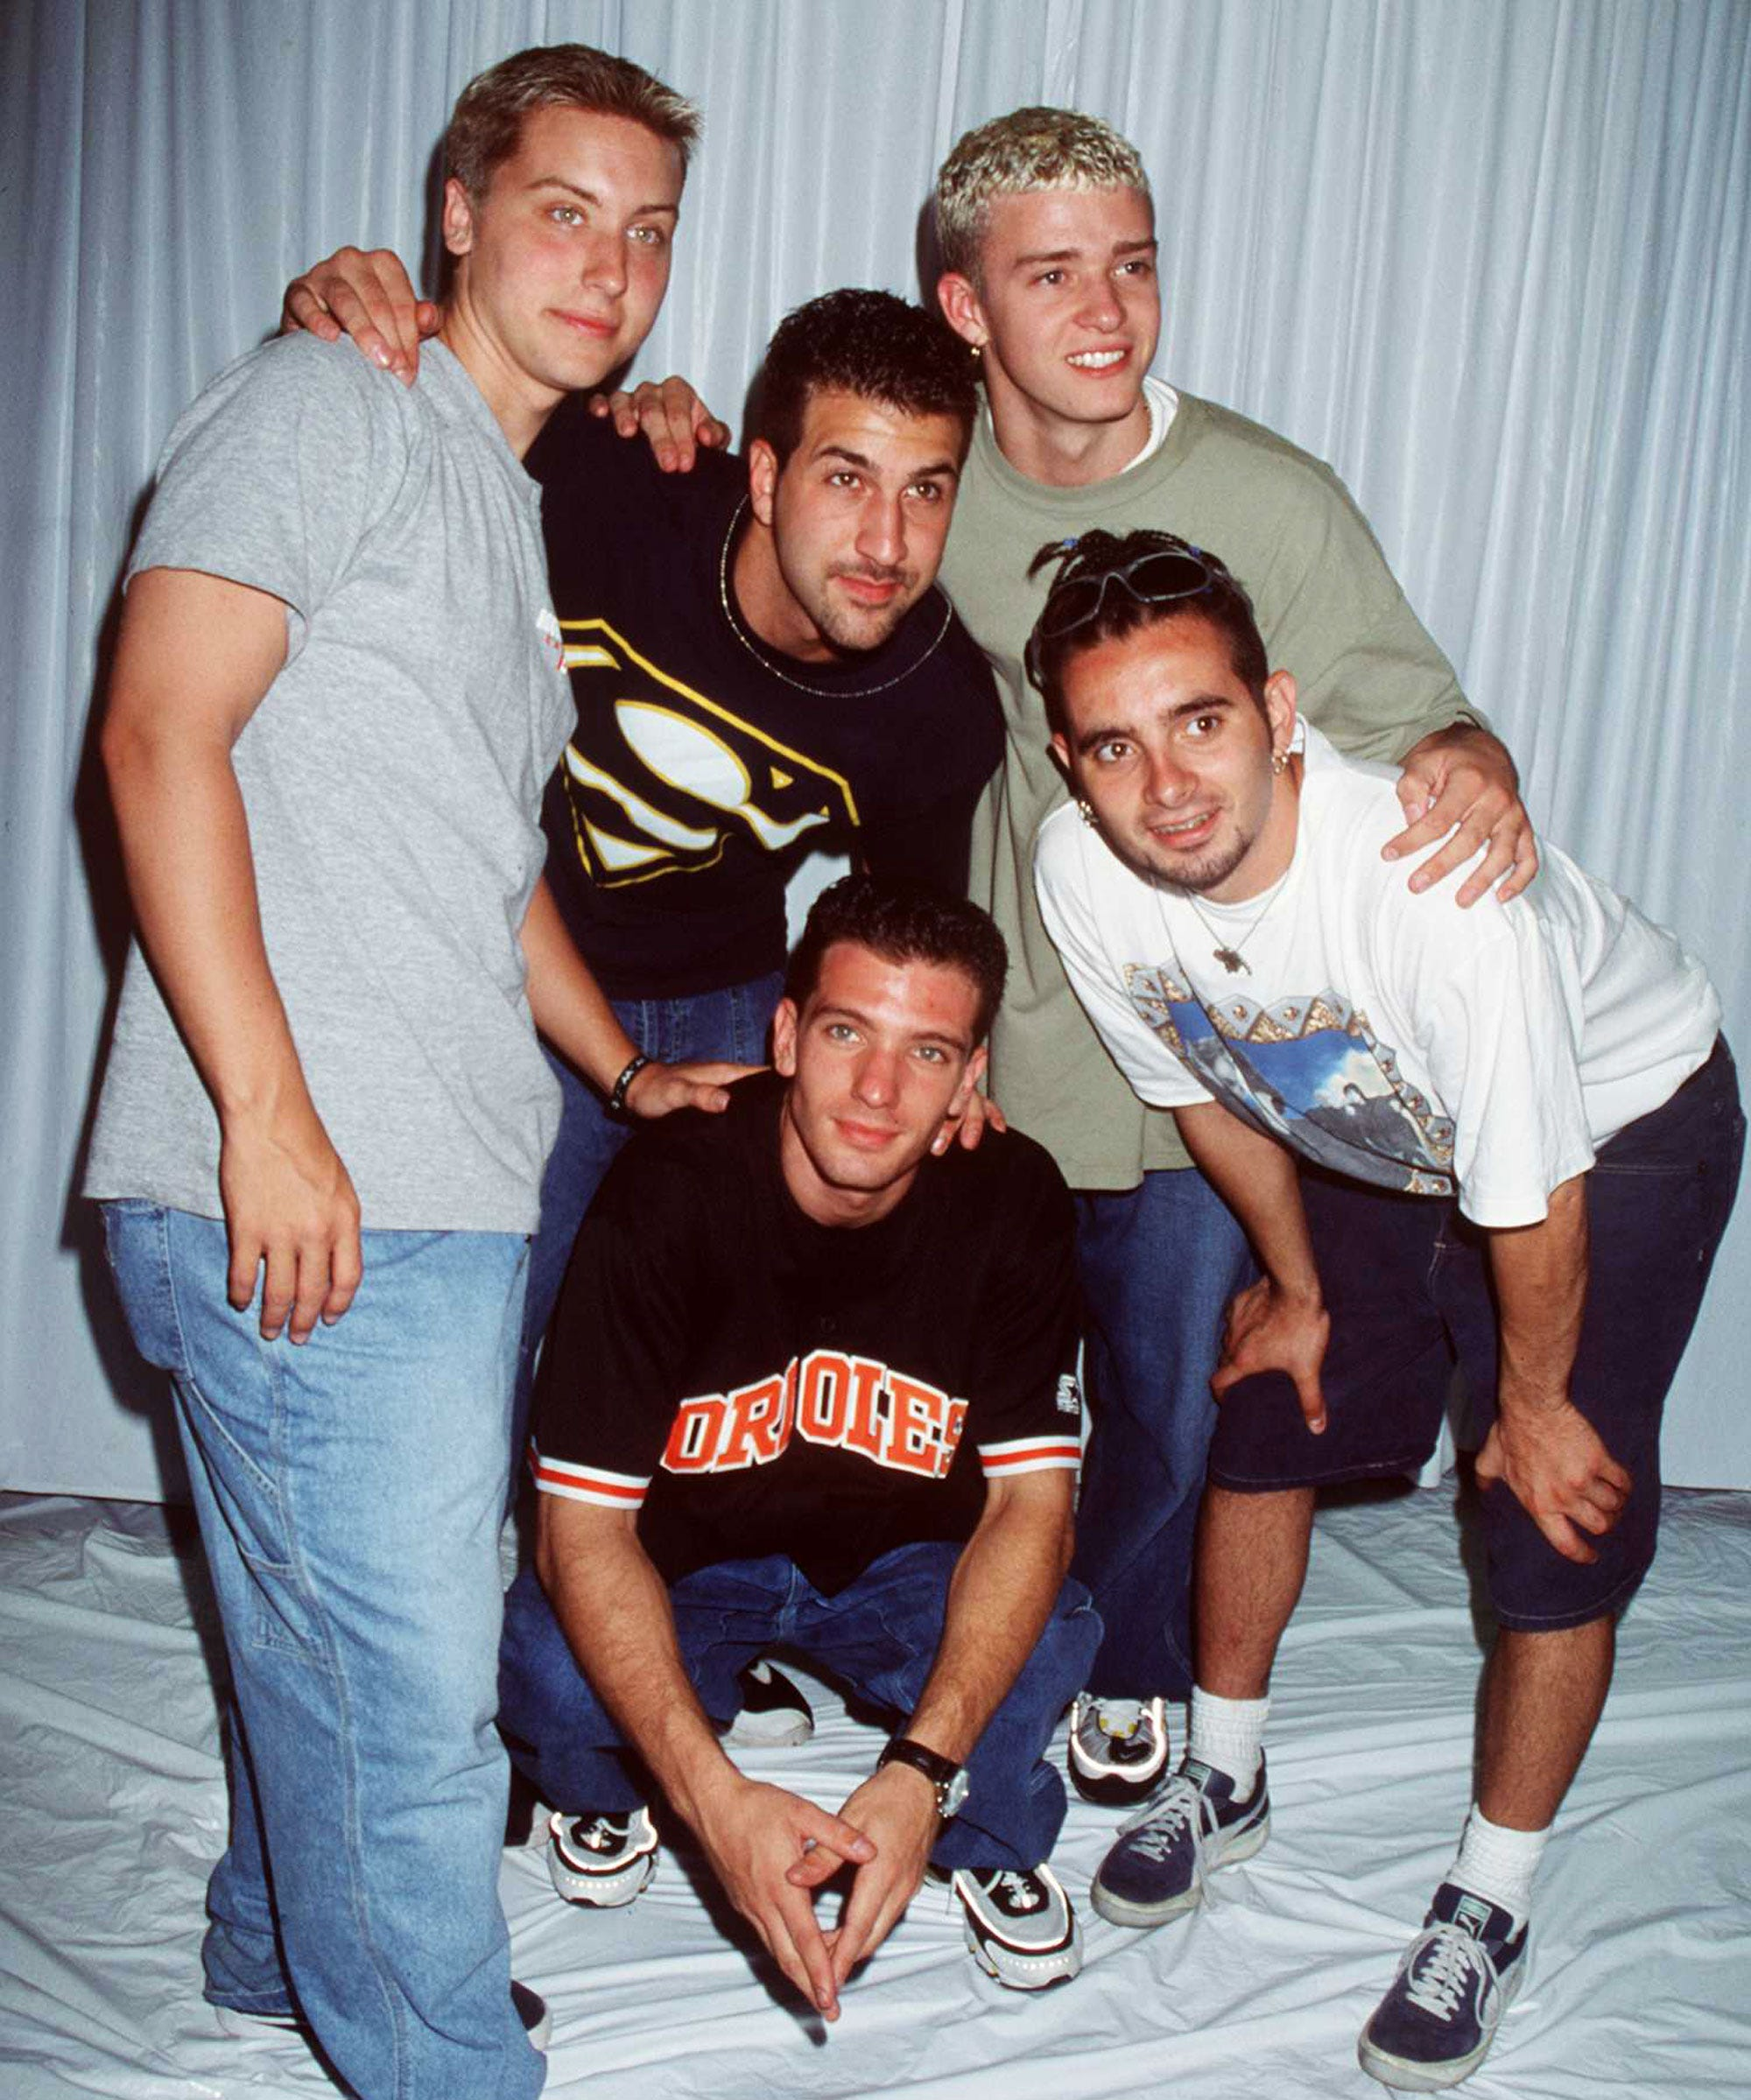 Backstreet Boys Vs NSYNC Best 90s Boy Band Opinion